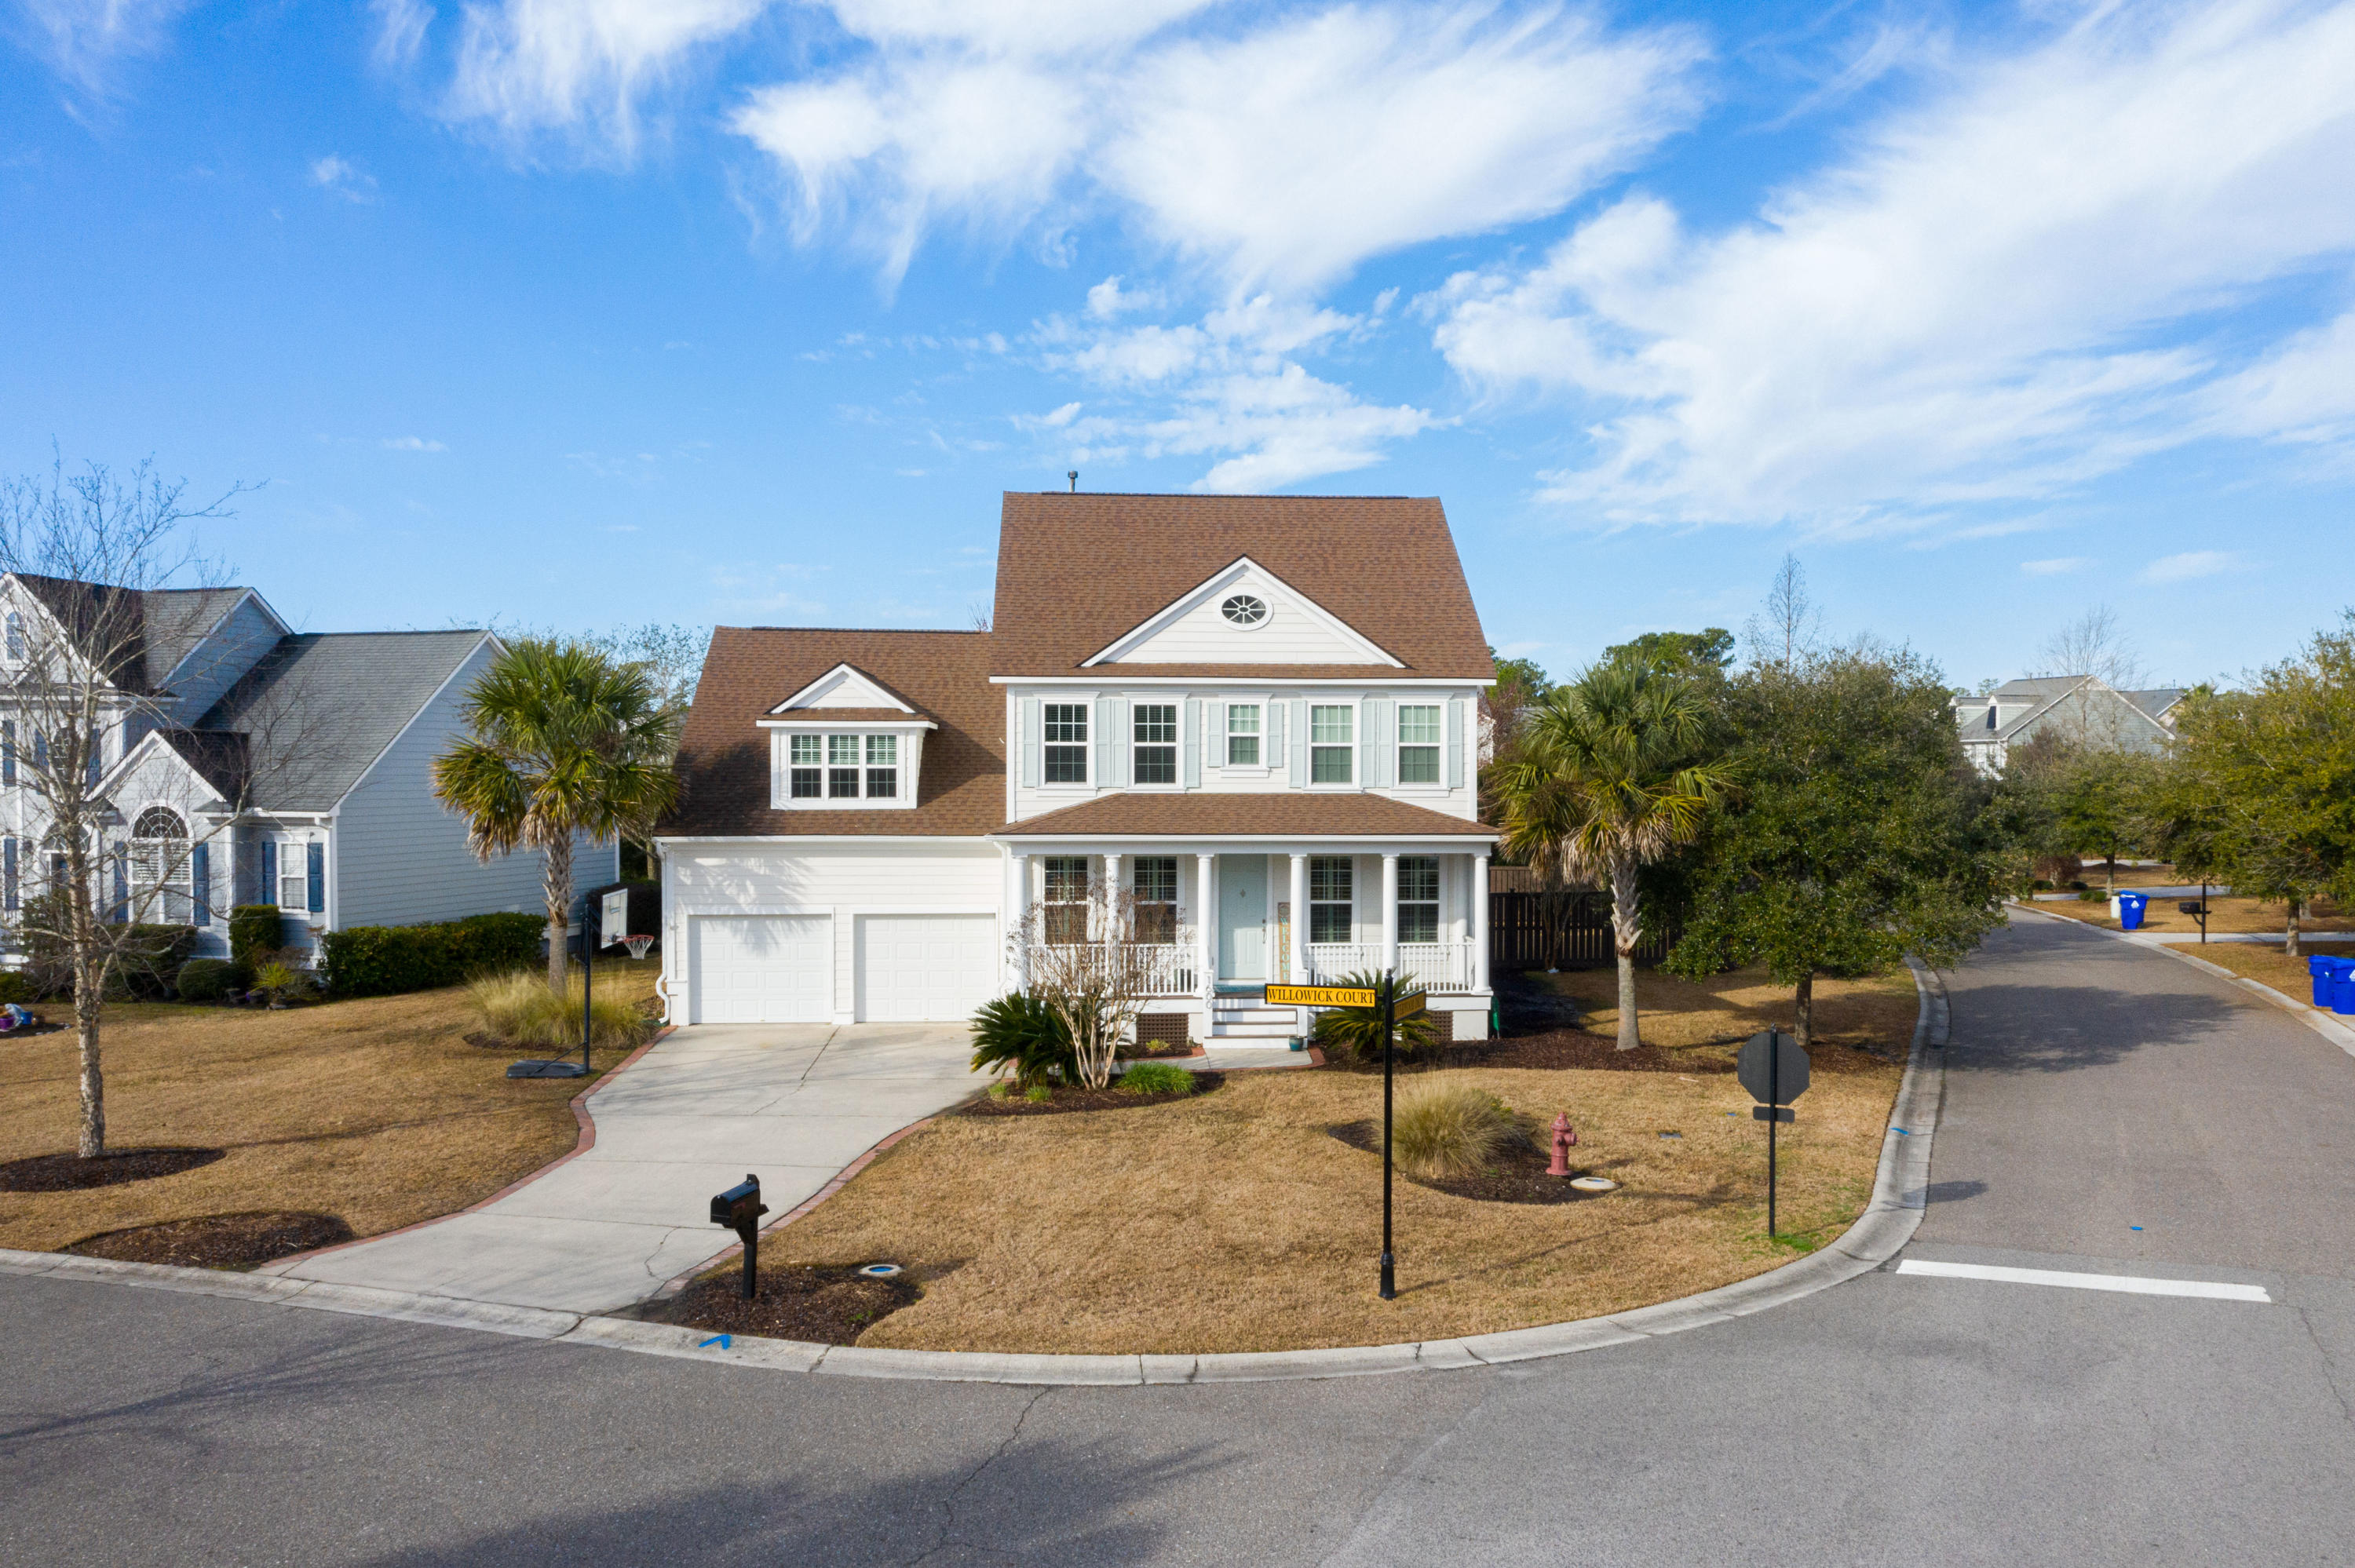 Dunes West Homes For Sale - 1600 Willowick, Mount Pleasant, SC - 1